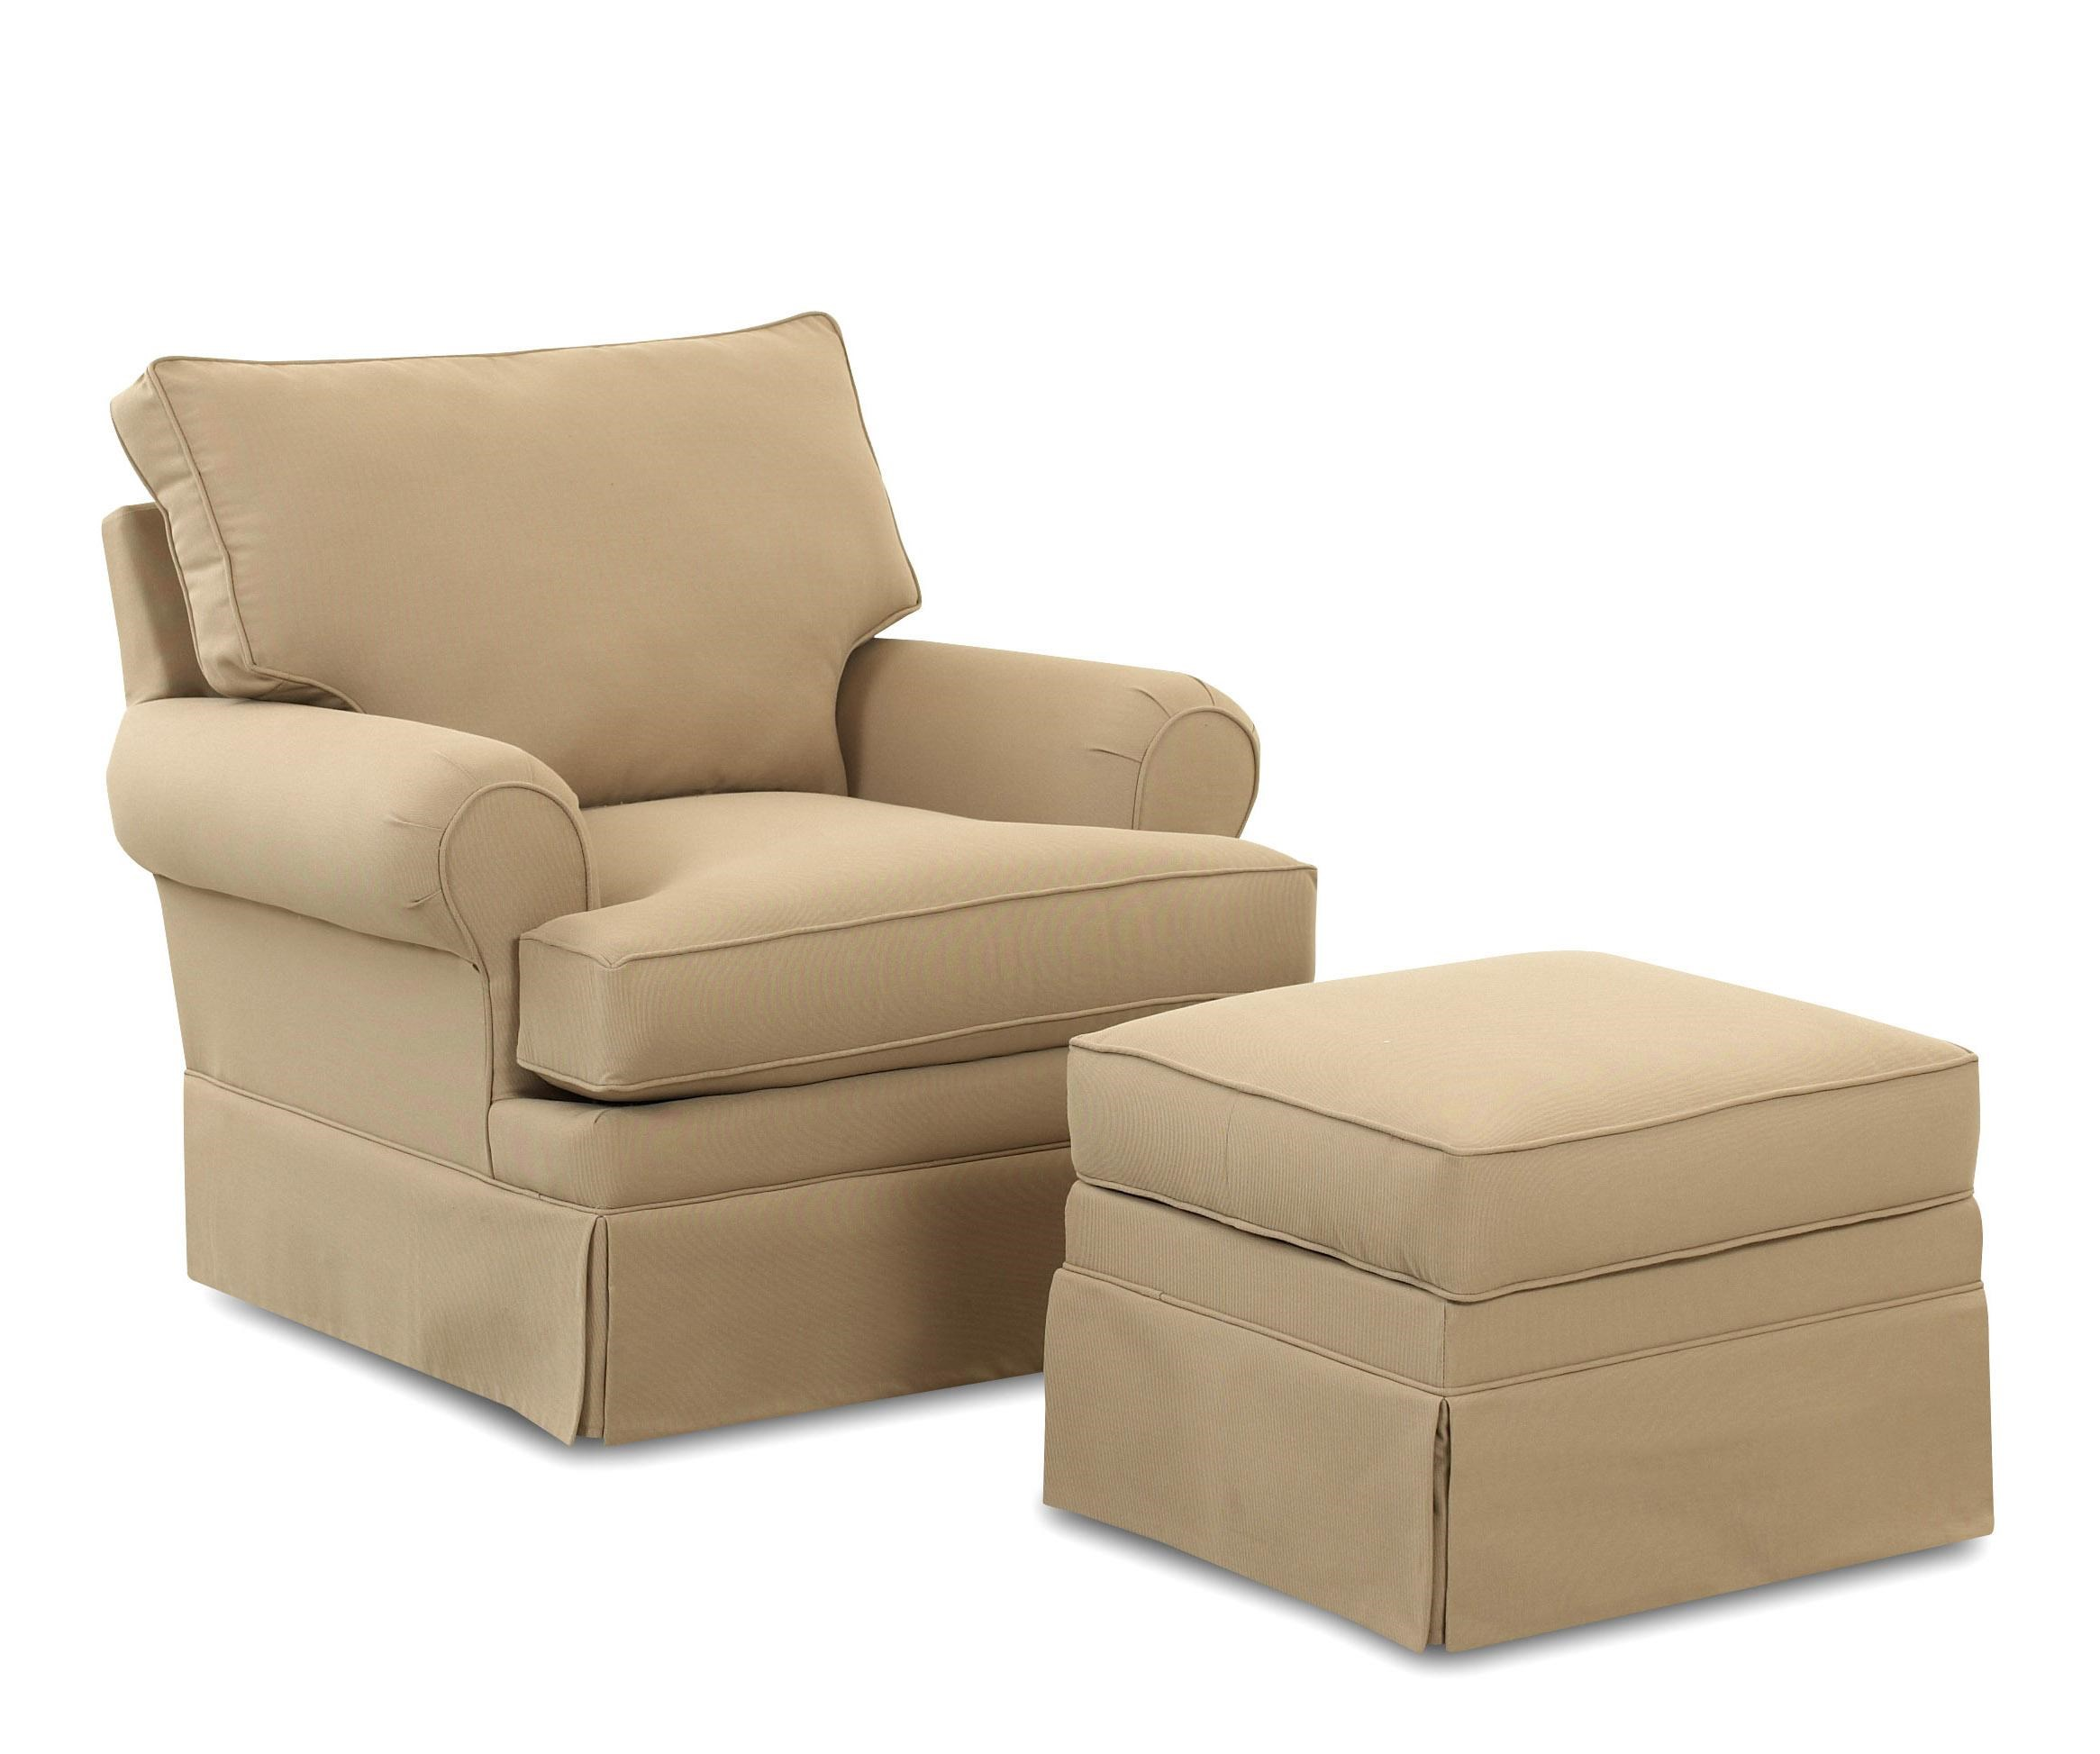 Chairs And Accents Carolina Glider Chair And Ottoman